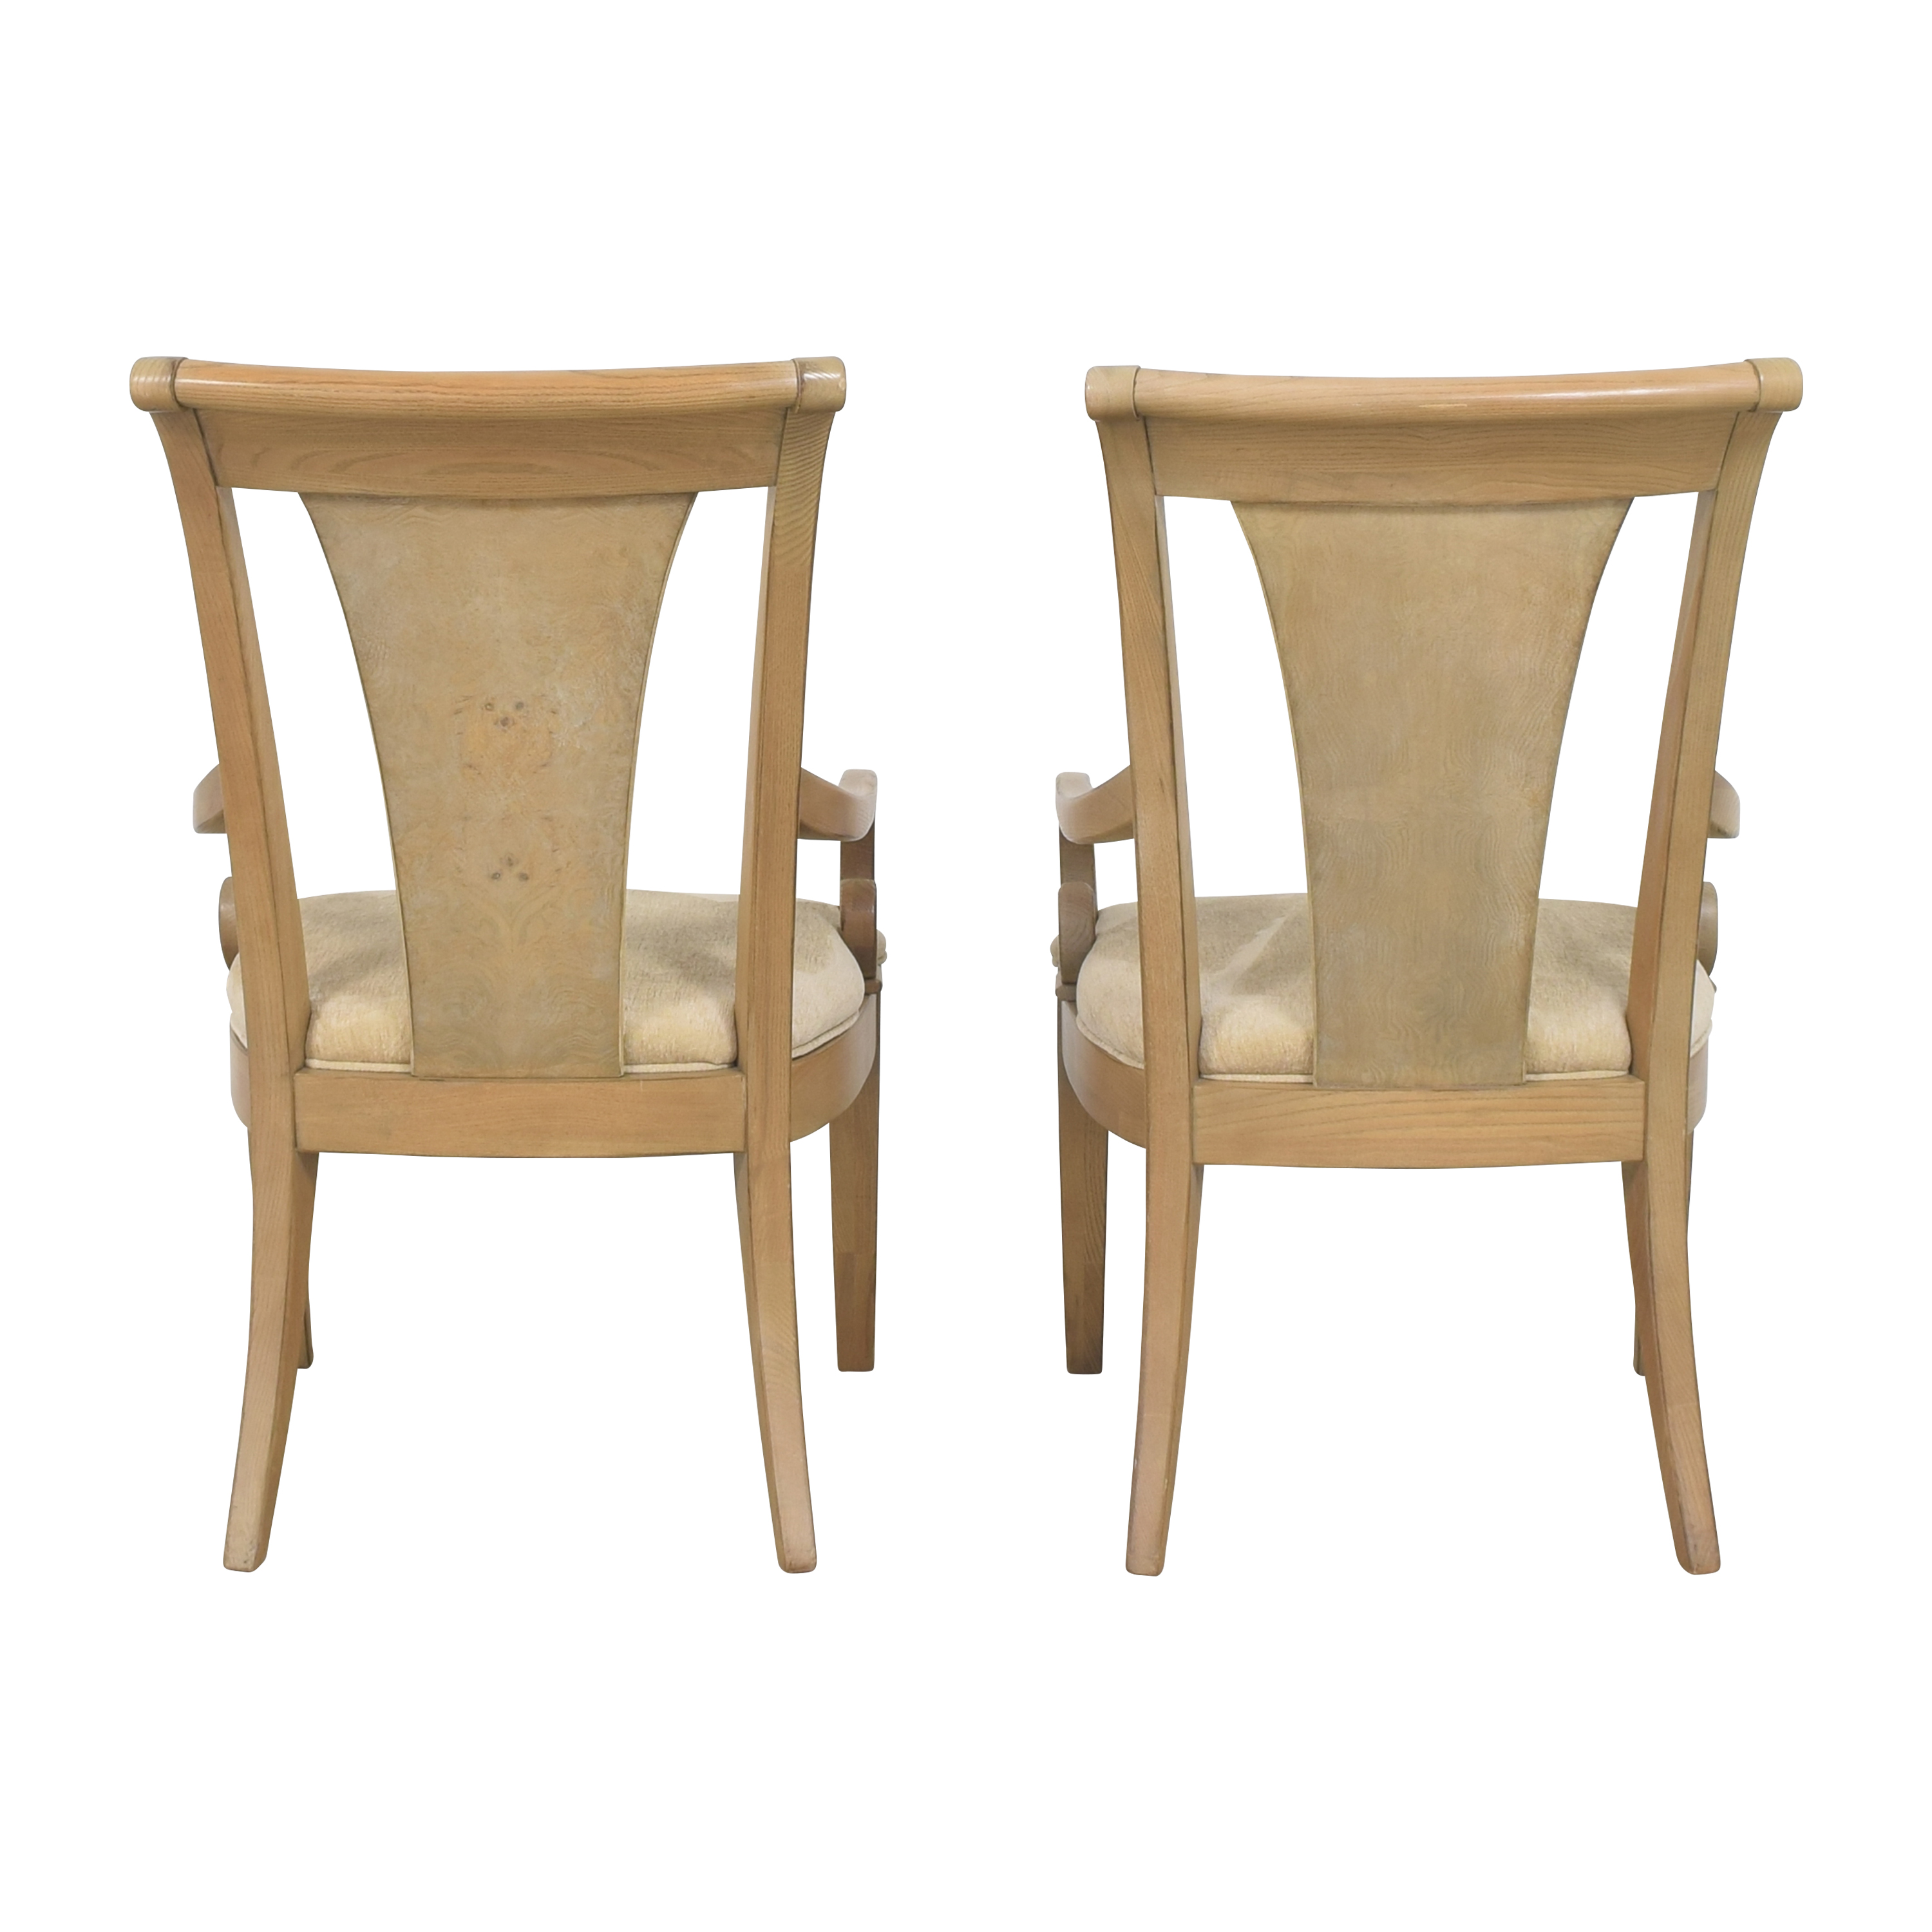 Drexel Heritage Dining Arm Chairs / Chairs